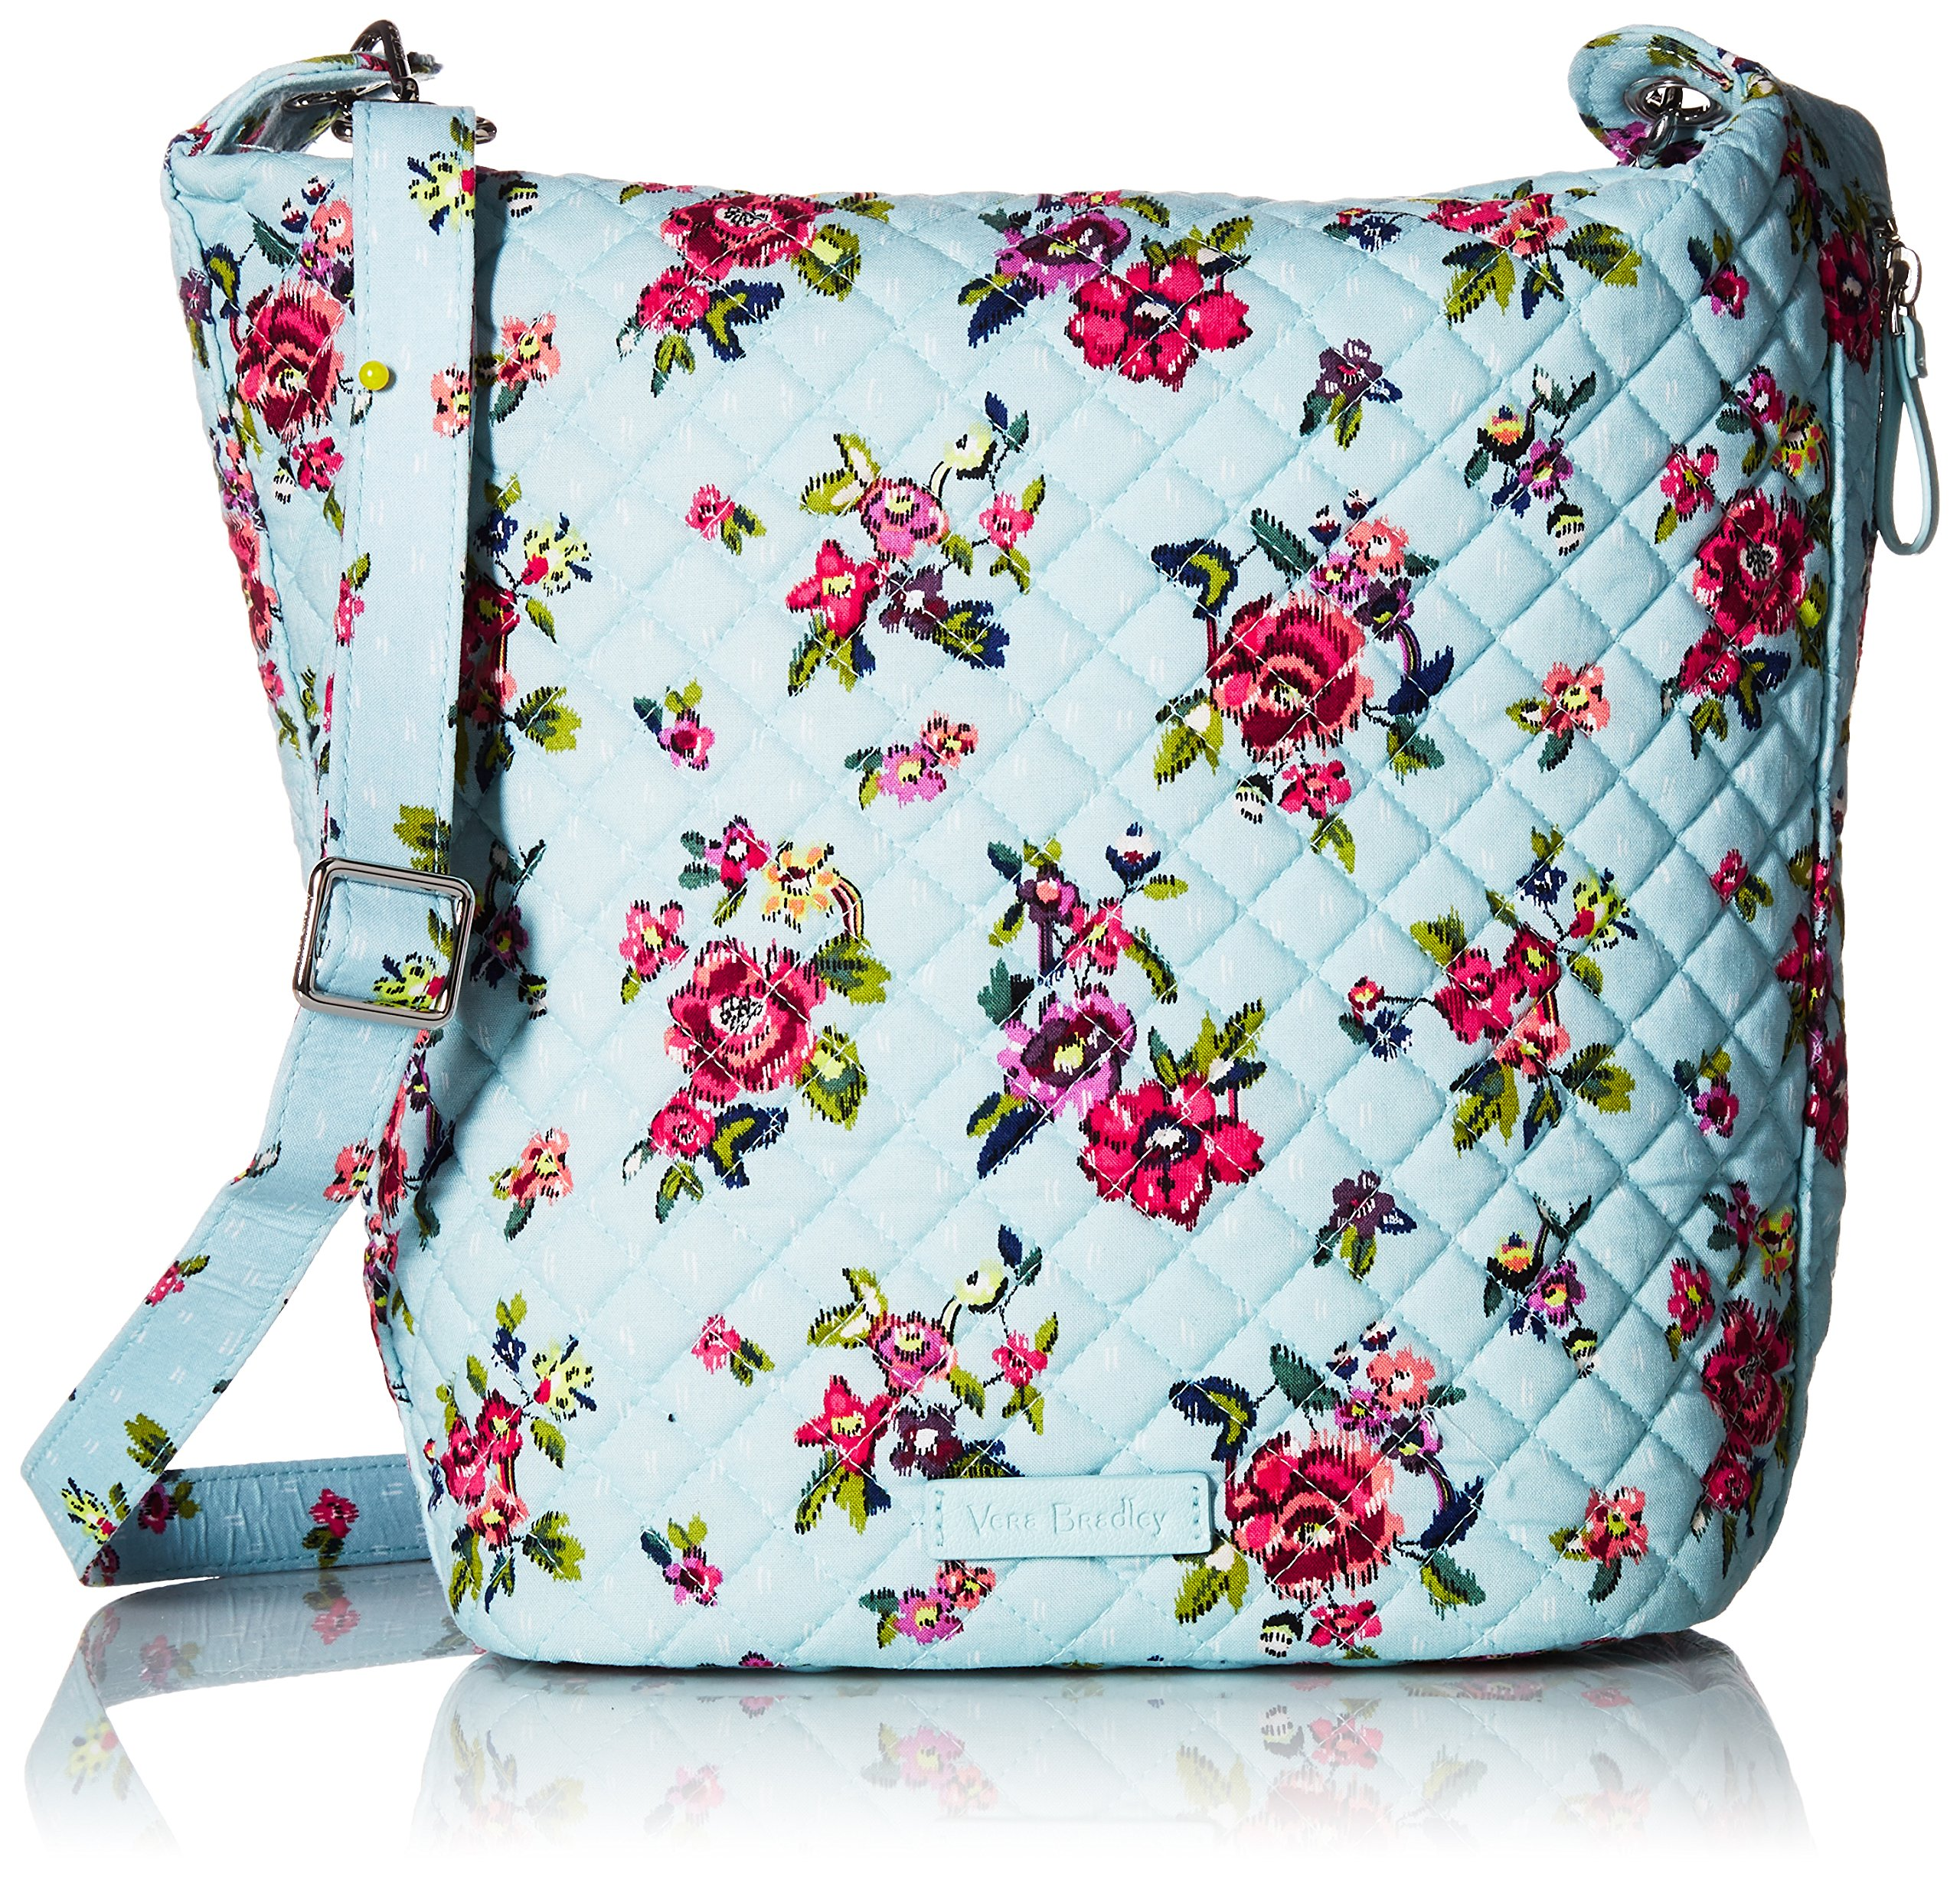 Vera Bradley Carson Hobo Bag, Signature Cotton, Water Bouquet